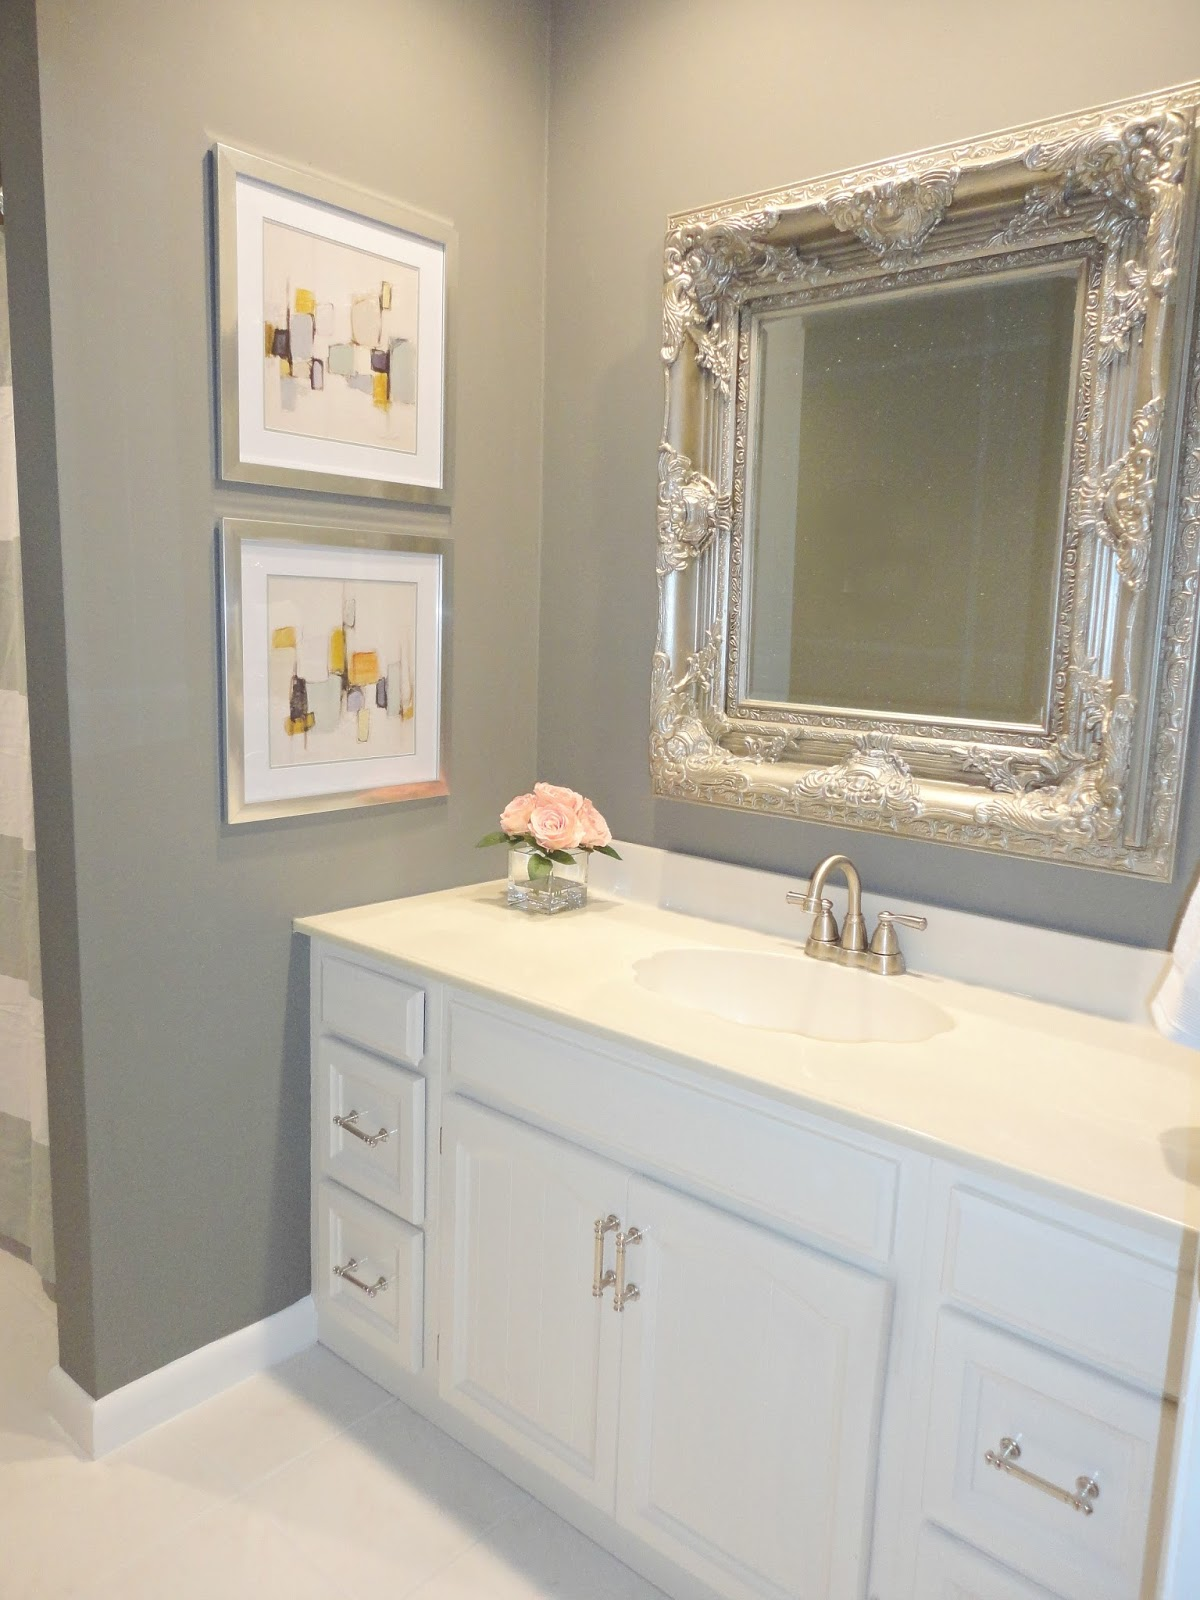 Best of home depot bathroom vanities usa insured by ross for Inexpensive bathroom vanity ideas